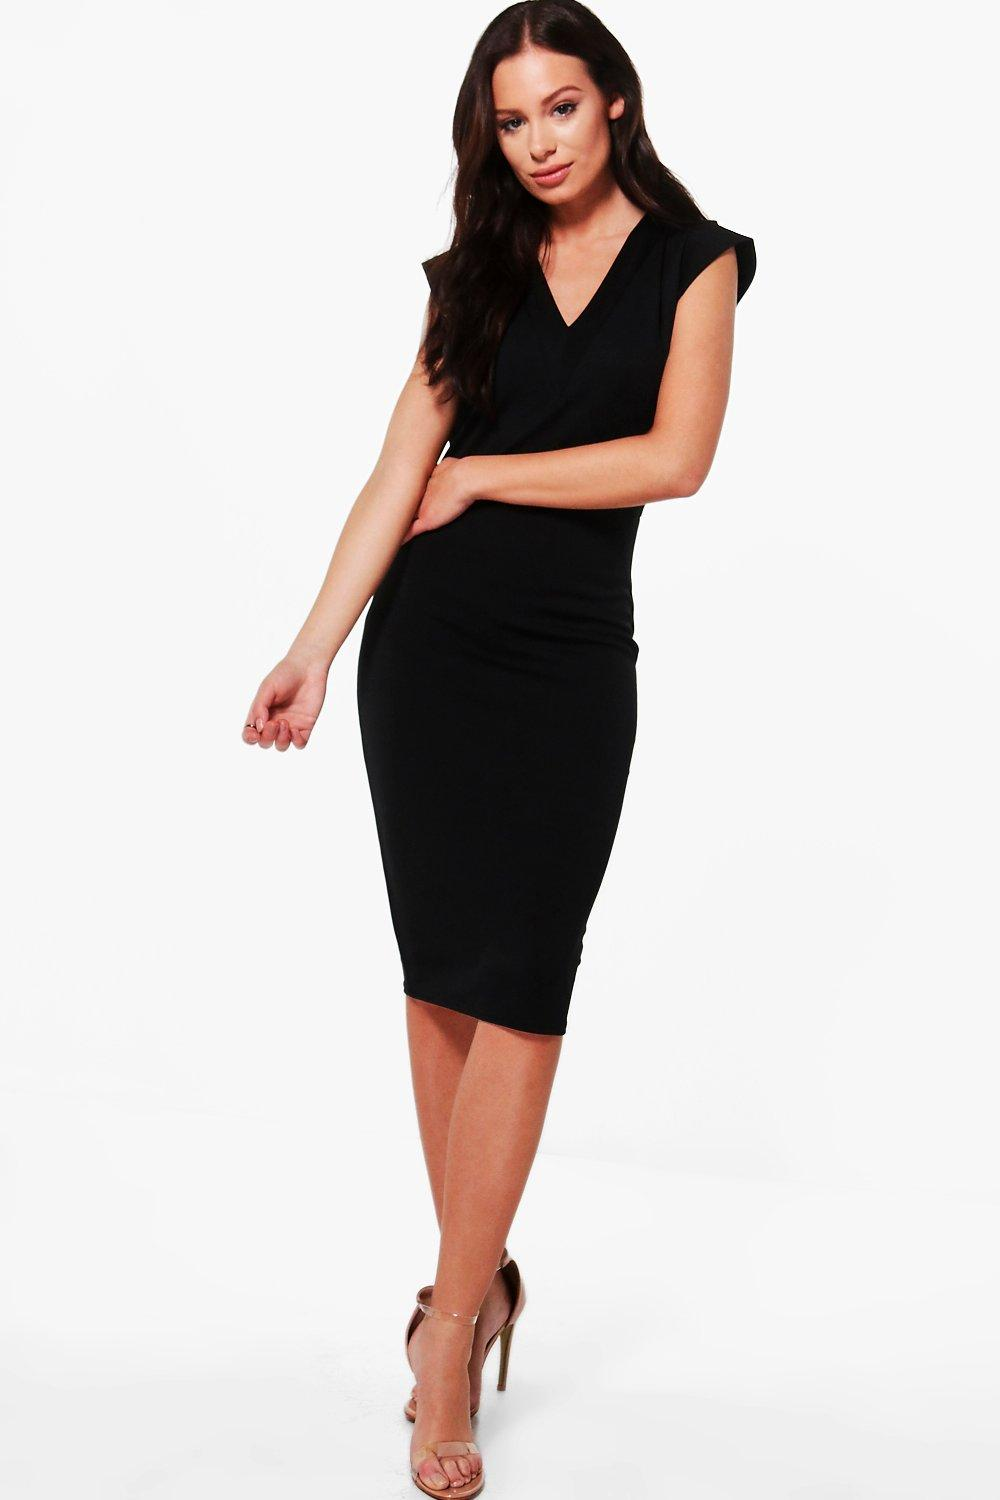 NEW-Boohoo-Womens-Hannah-Tailored-Fitted-Midi-Dress-in